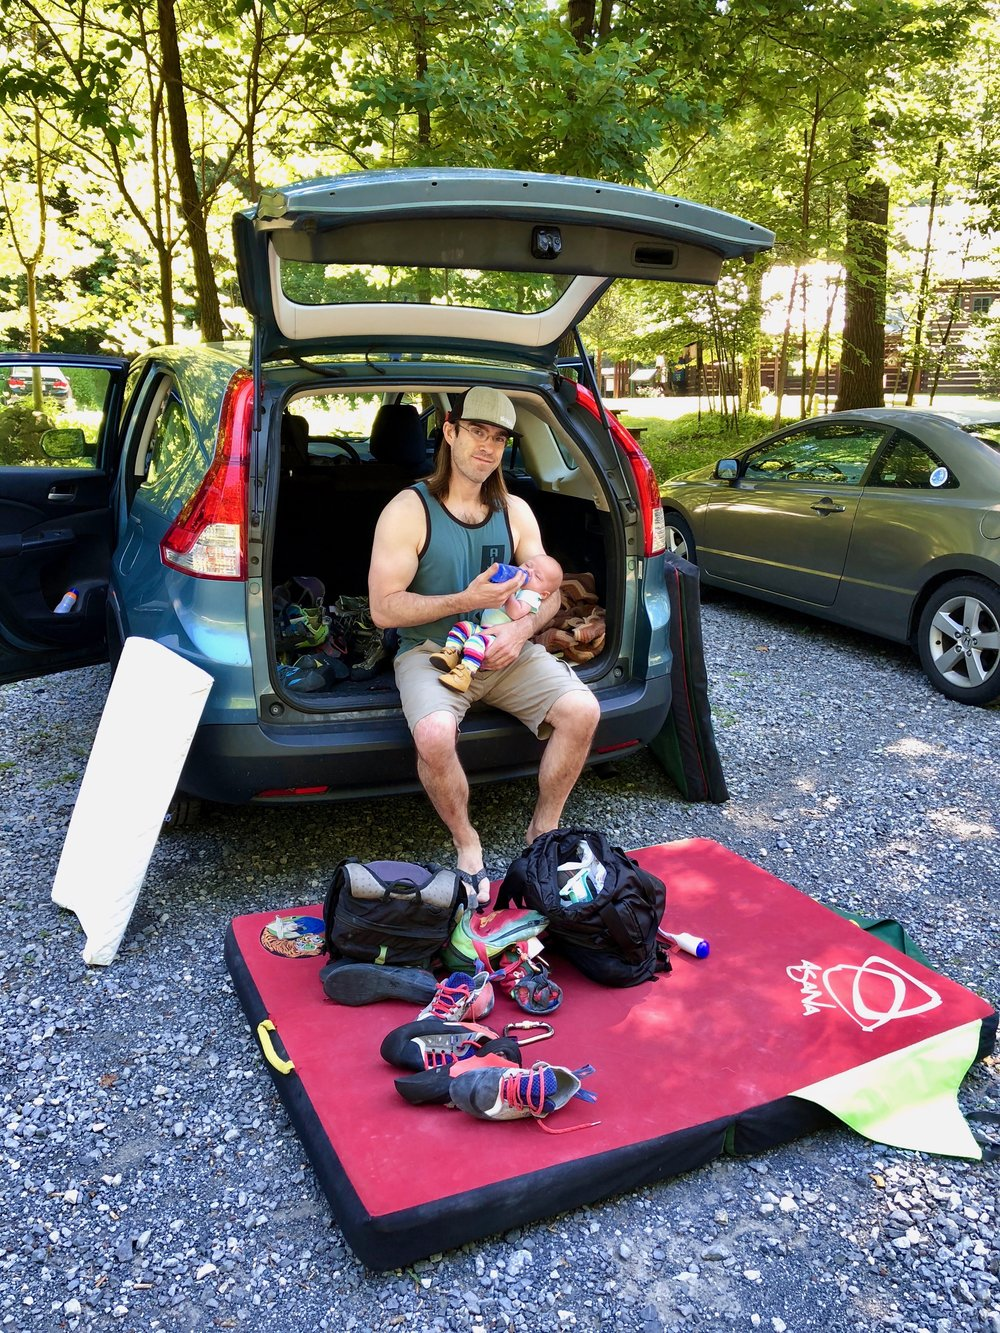 Robin Close - Chapter Chair - Growing up in Columbia, MD, where he continues to live and teach, Robin Close spent much of his childhood dreaming of big mountains and being a climber. While he still dreams of mountains and loves to take long walks among them at every opportunity, most of his actual climbing days are spent on tiny boulders. He loves lowball traverses and awkward eliminates, and has an unusual obsession with featureless slabs. Robin loves climbing for the physical outlet and focus it provides him, but even more for the community he has found, and he is grateful for any opportunity to help others find the same connection that he has.